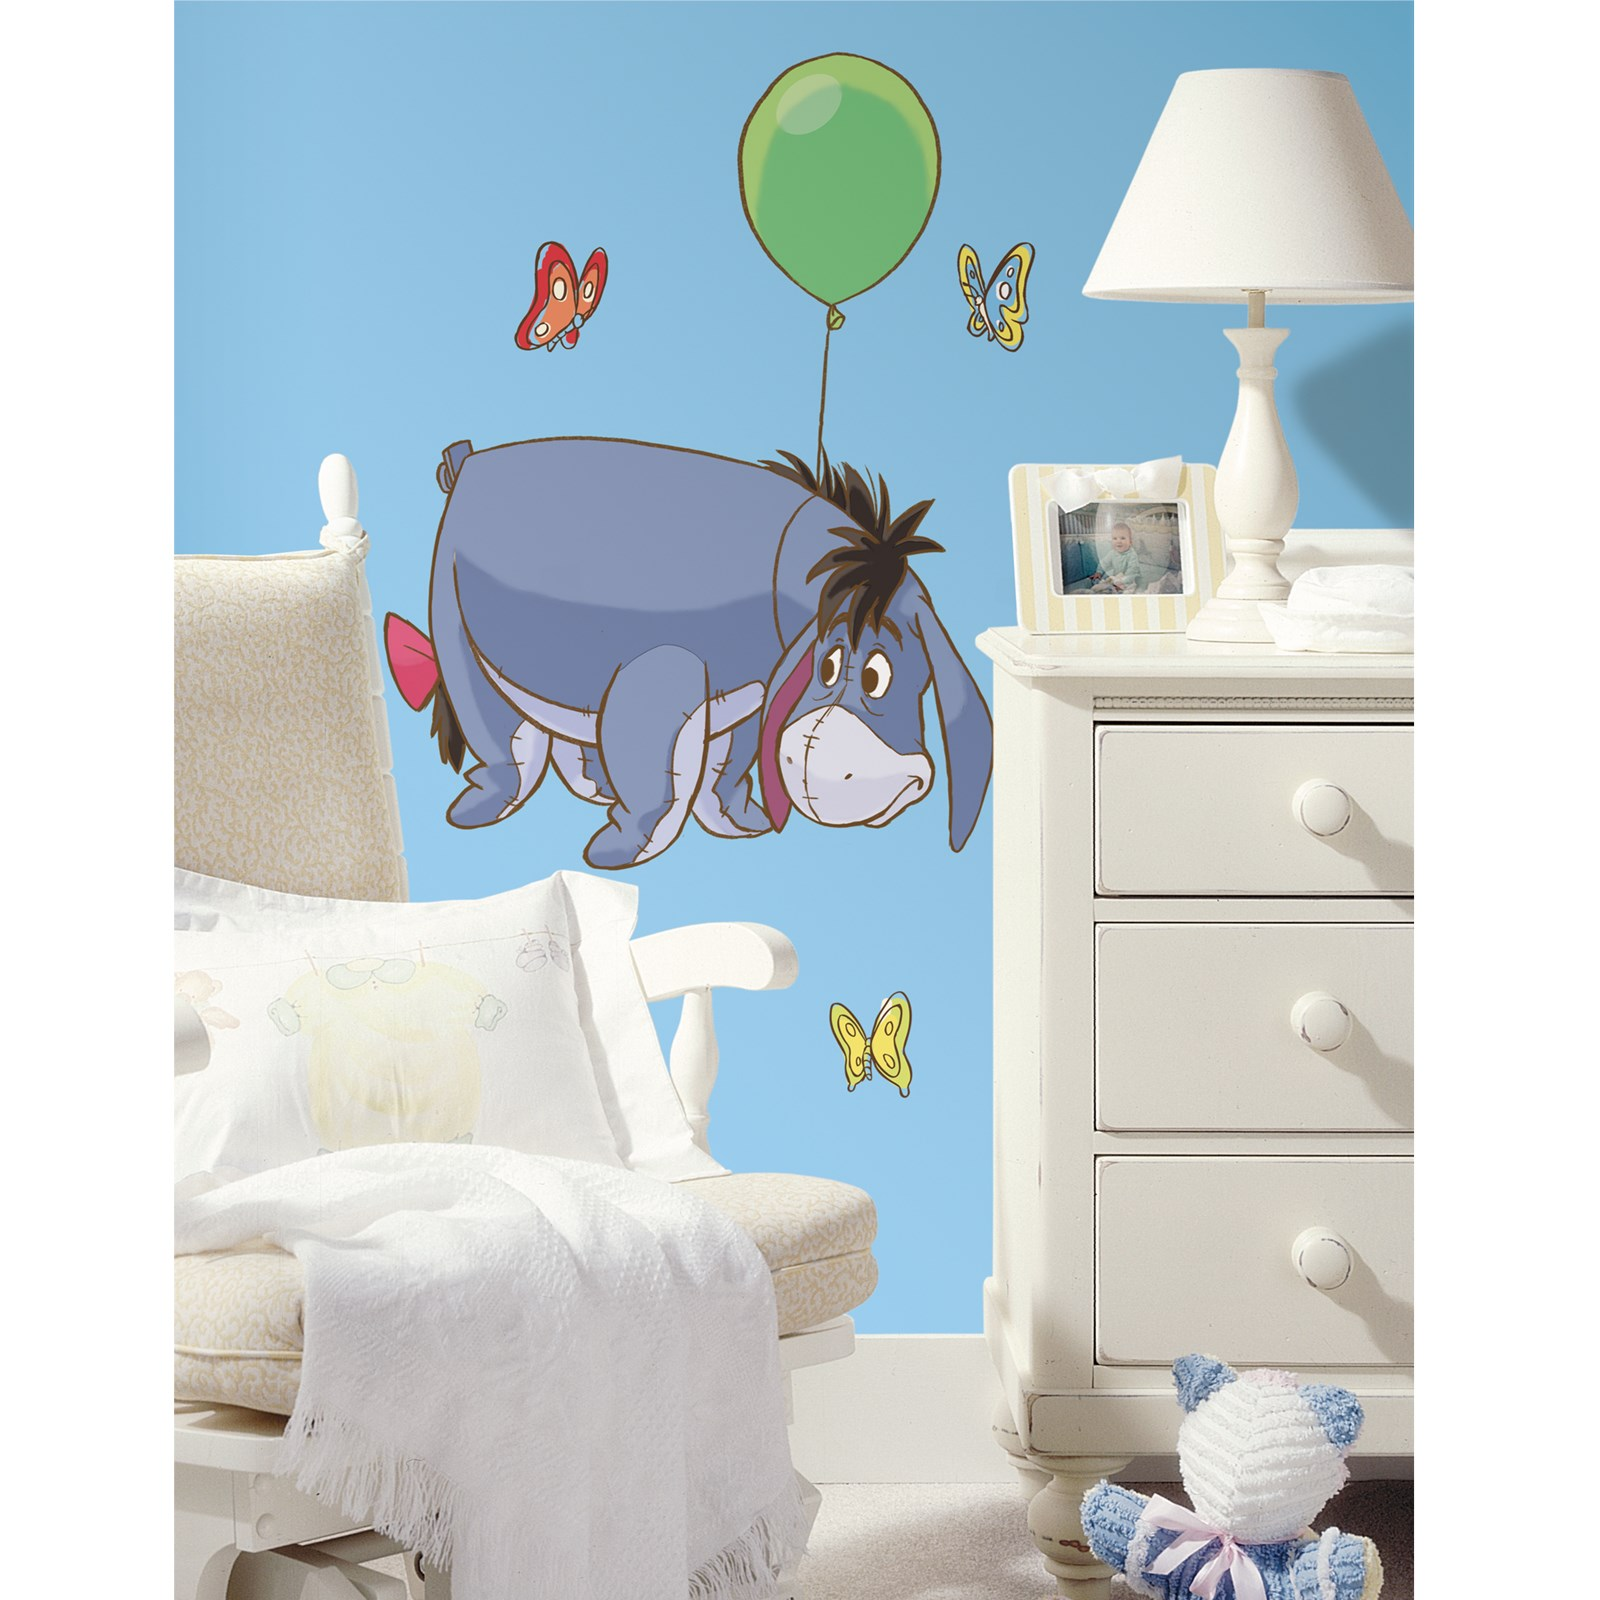 Disney Eeyore Giant Peel and Stick Wall Decals: Winnie the Pooh Party Games for Kids